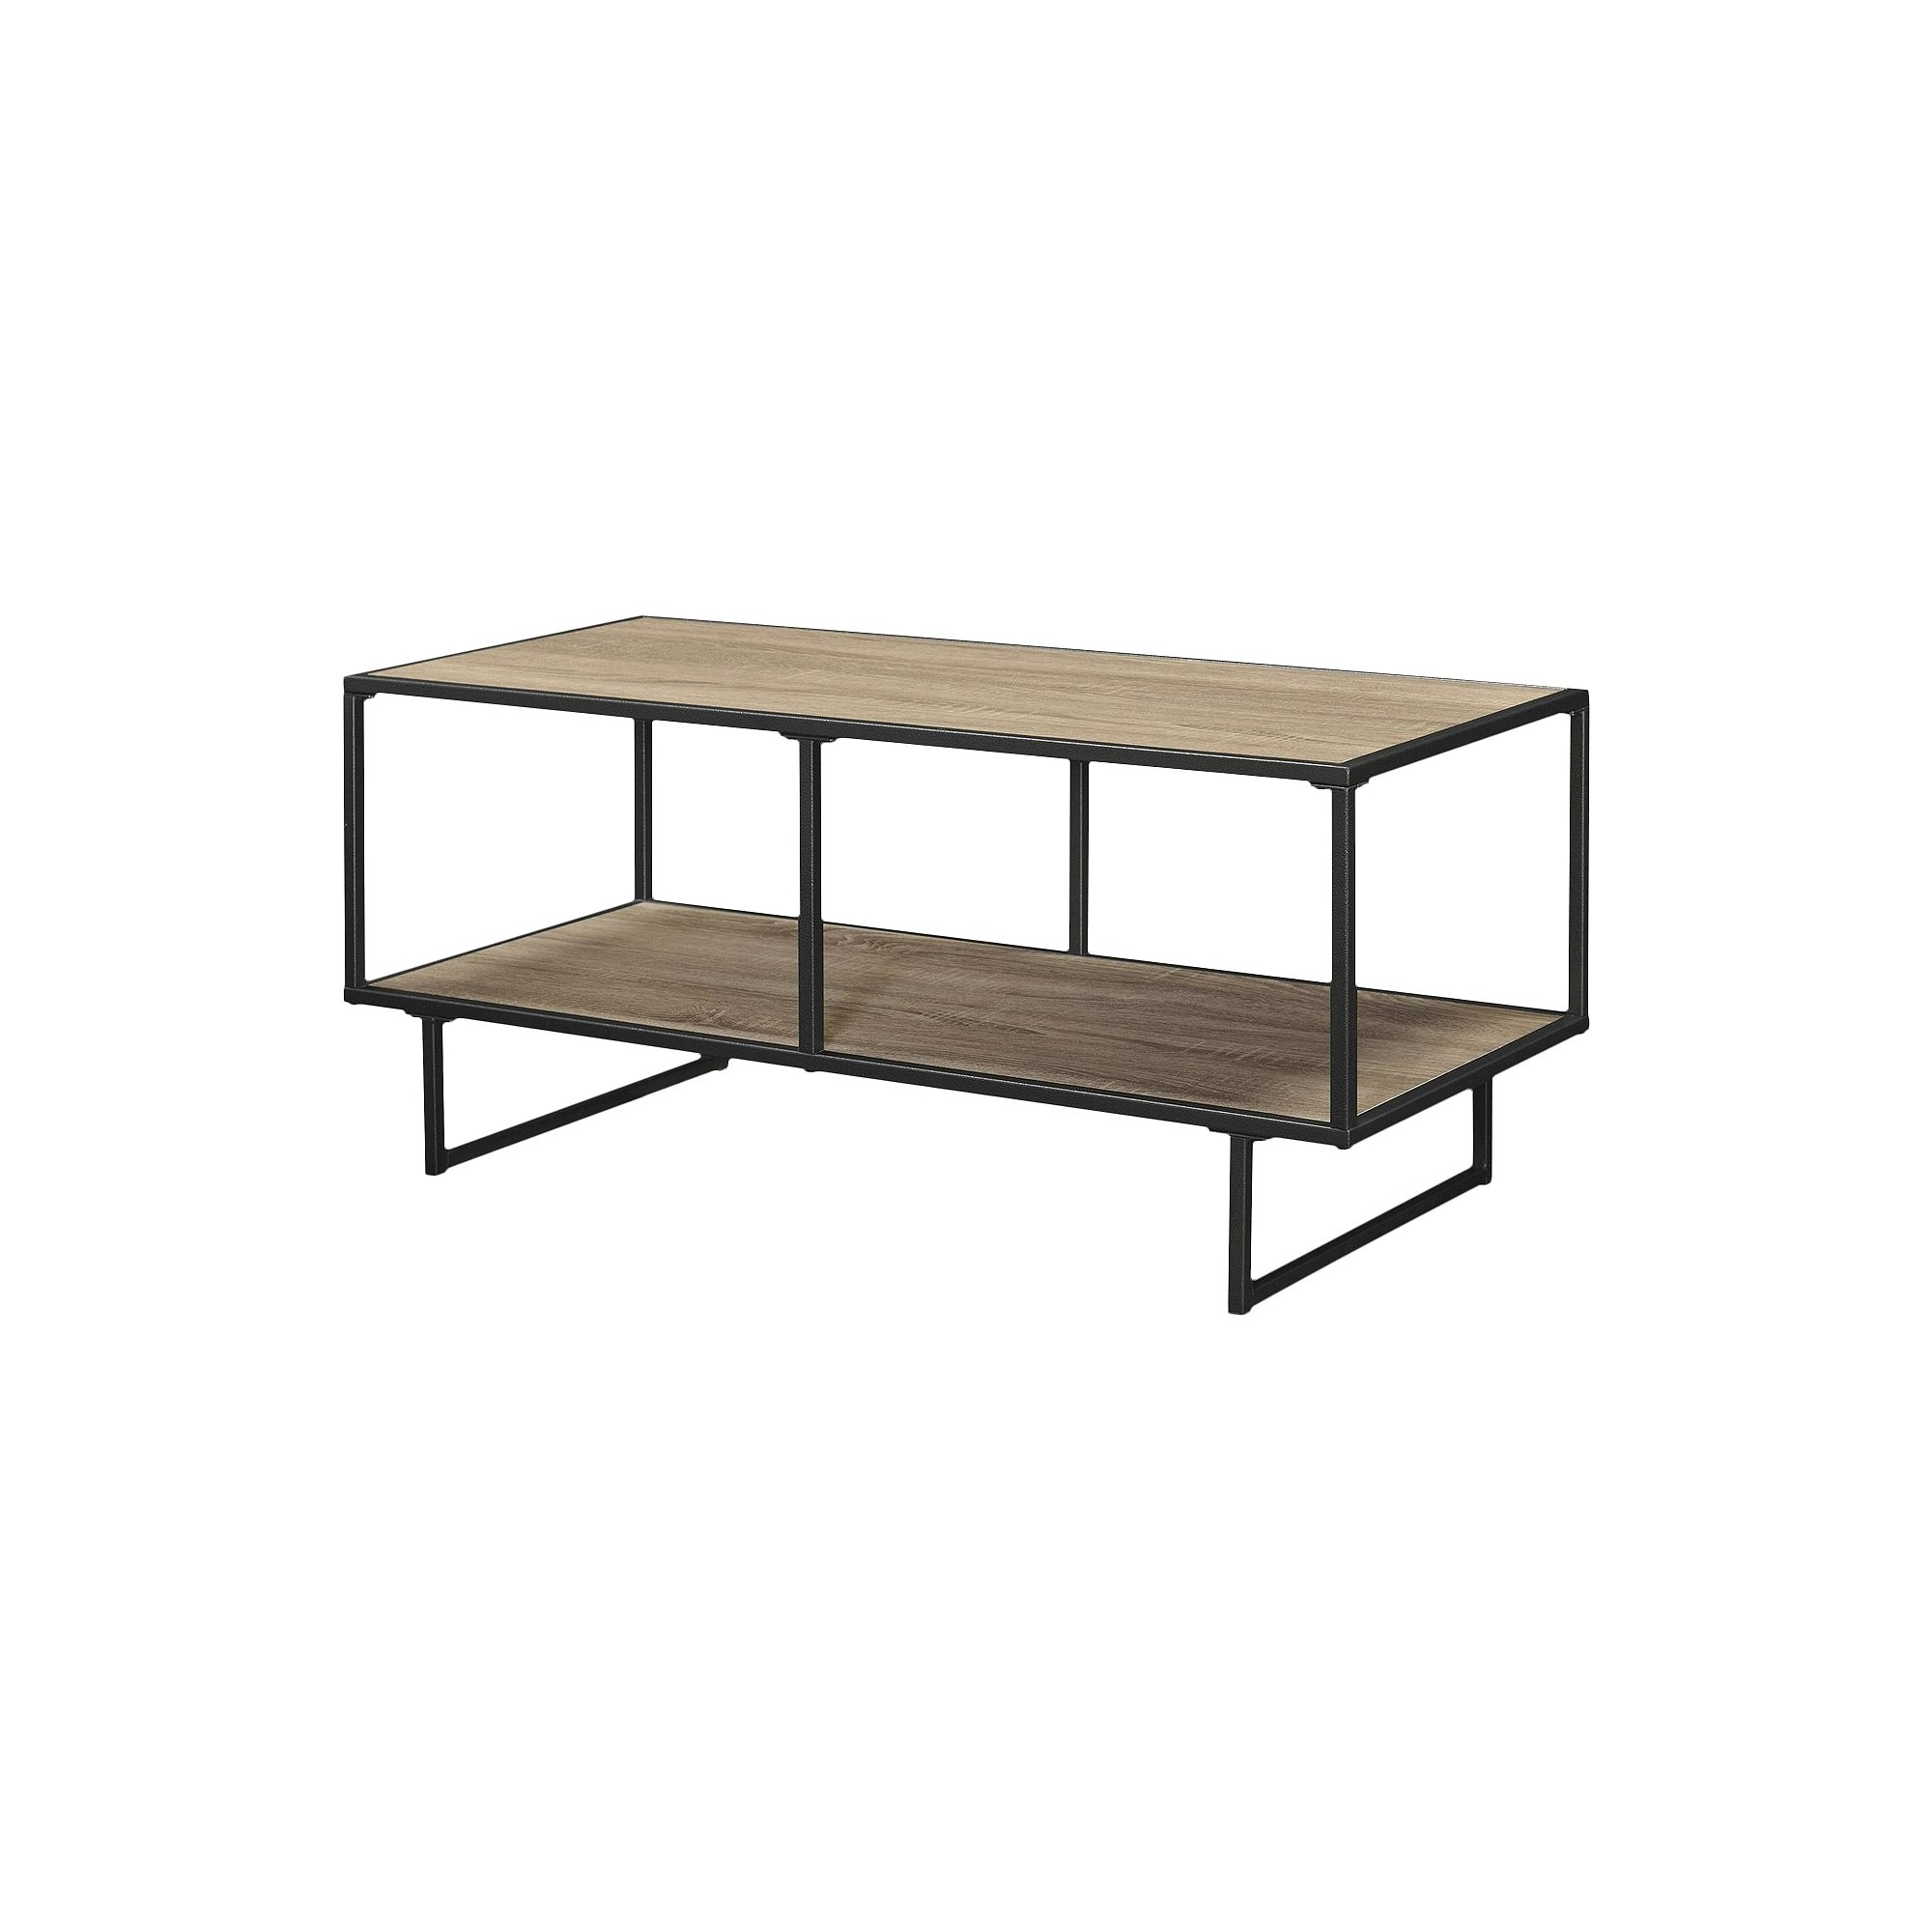 Gunmetal Media Console Tables Intended For Popular Emmett 42 Tv Stand/coffee Table With Metal Frame – Sonoma Oak (Gallery 2 of 20)